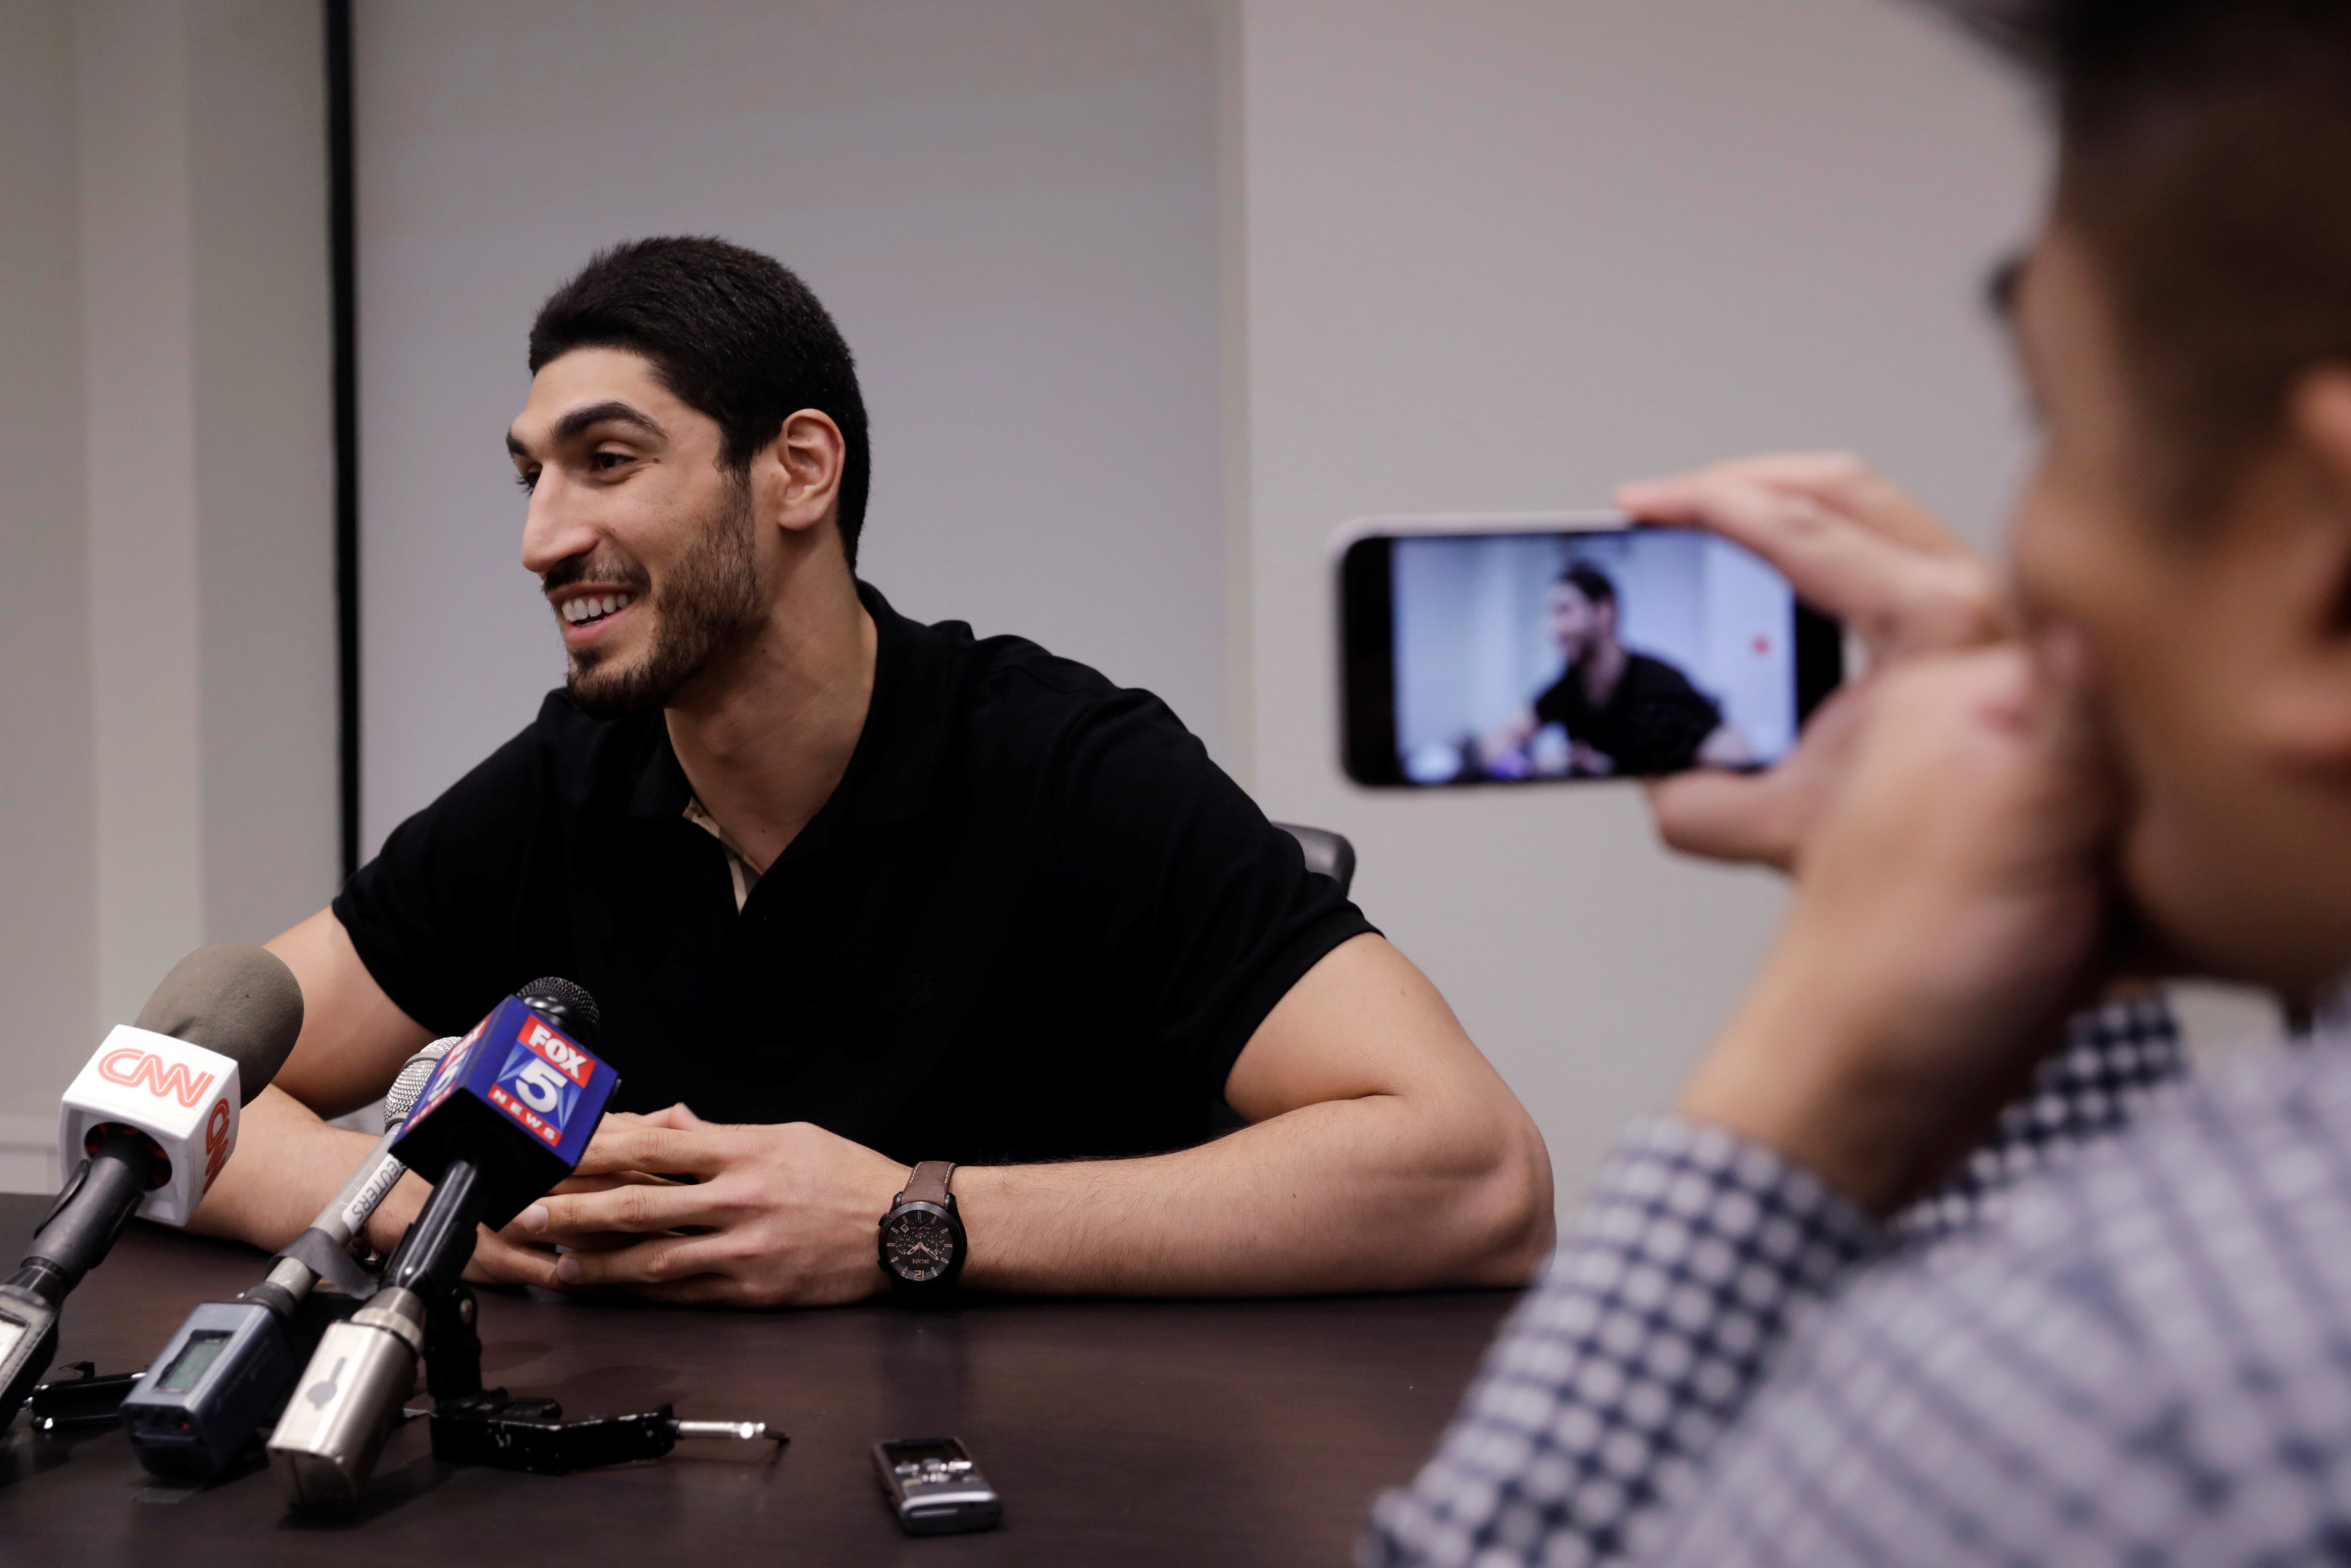 Turkish NBA player Enes Kanter speaks about the revocation of his Turkish passport and return to the United States at National Basketball Players Association headquarters in New York, U.S.,